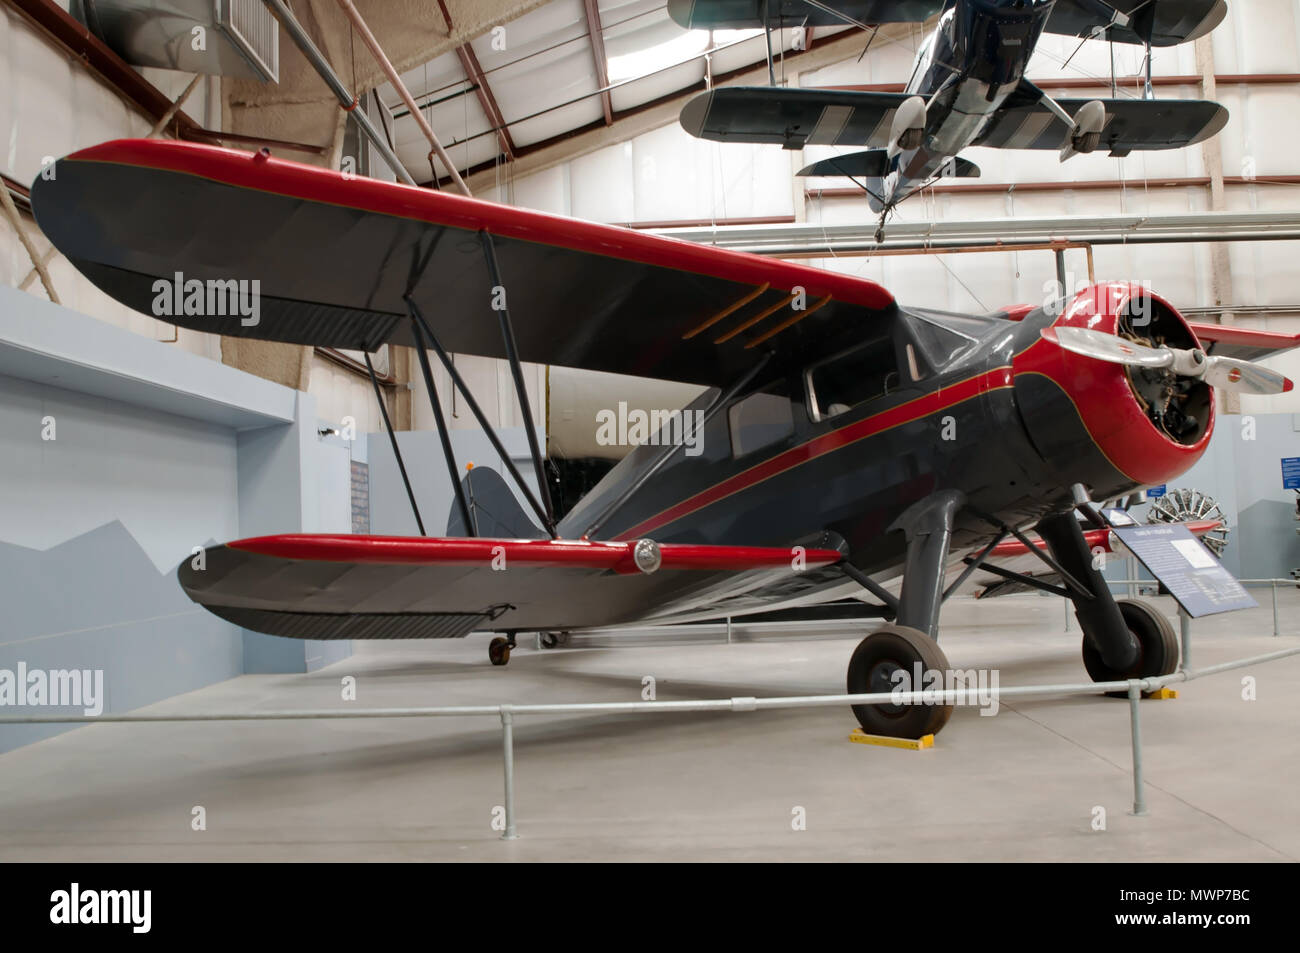 The WACO ZKS-6 bi-plane on display at the Pima Air and Space Museum in Tuscon, Arizona - Stock Image